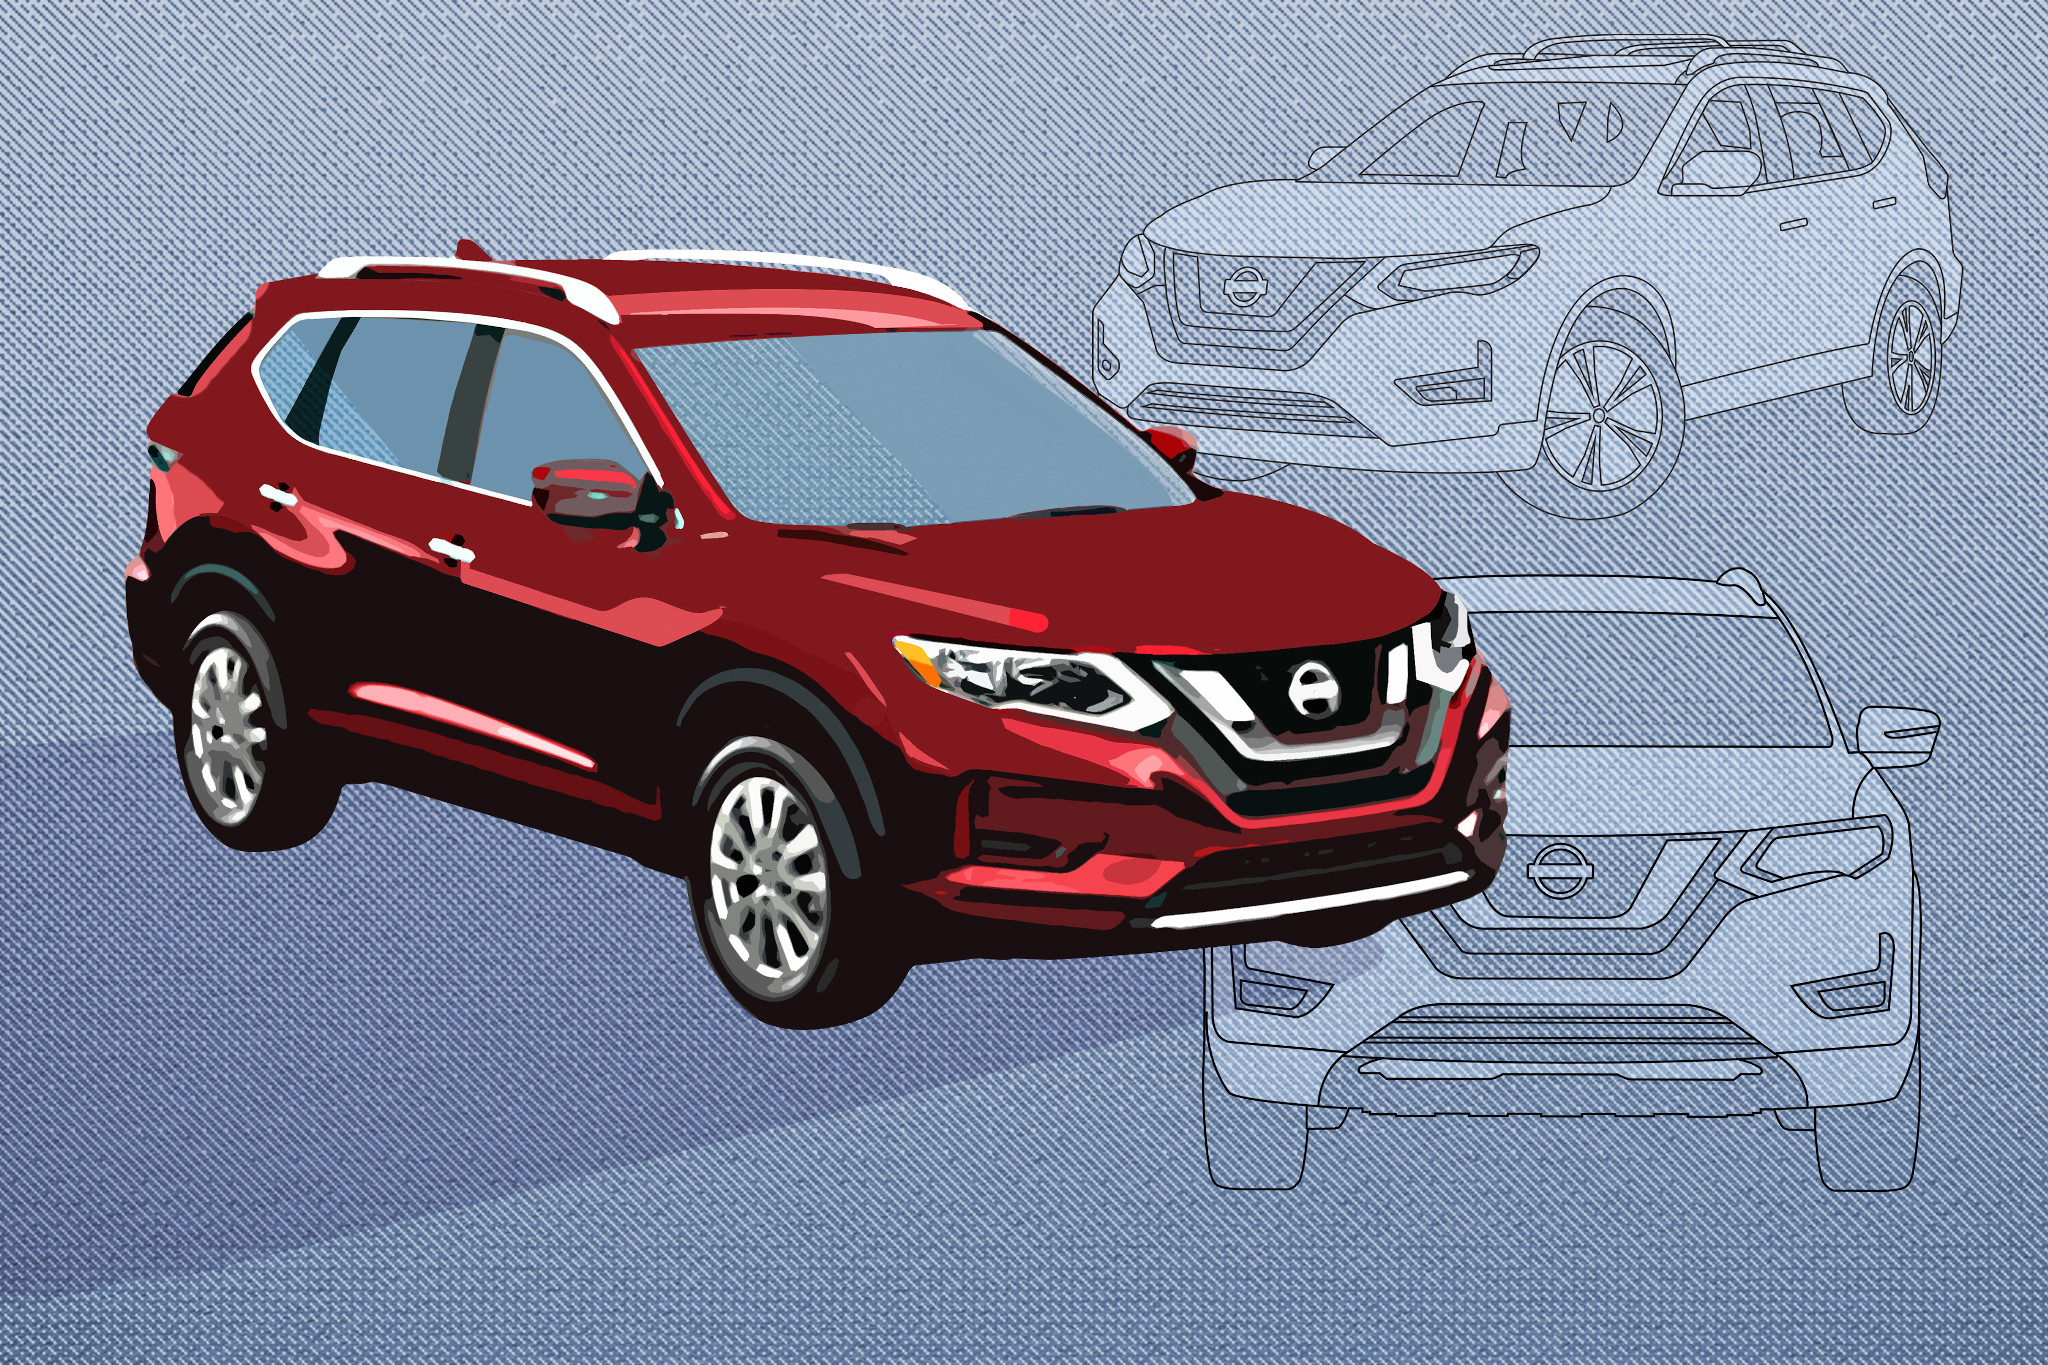 Which 2020 Nissan Rogue Trim Should I Buy: S, SV or SL?